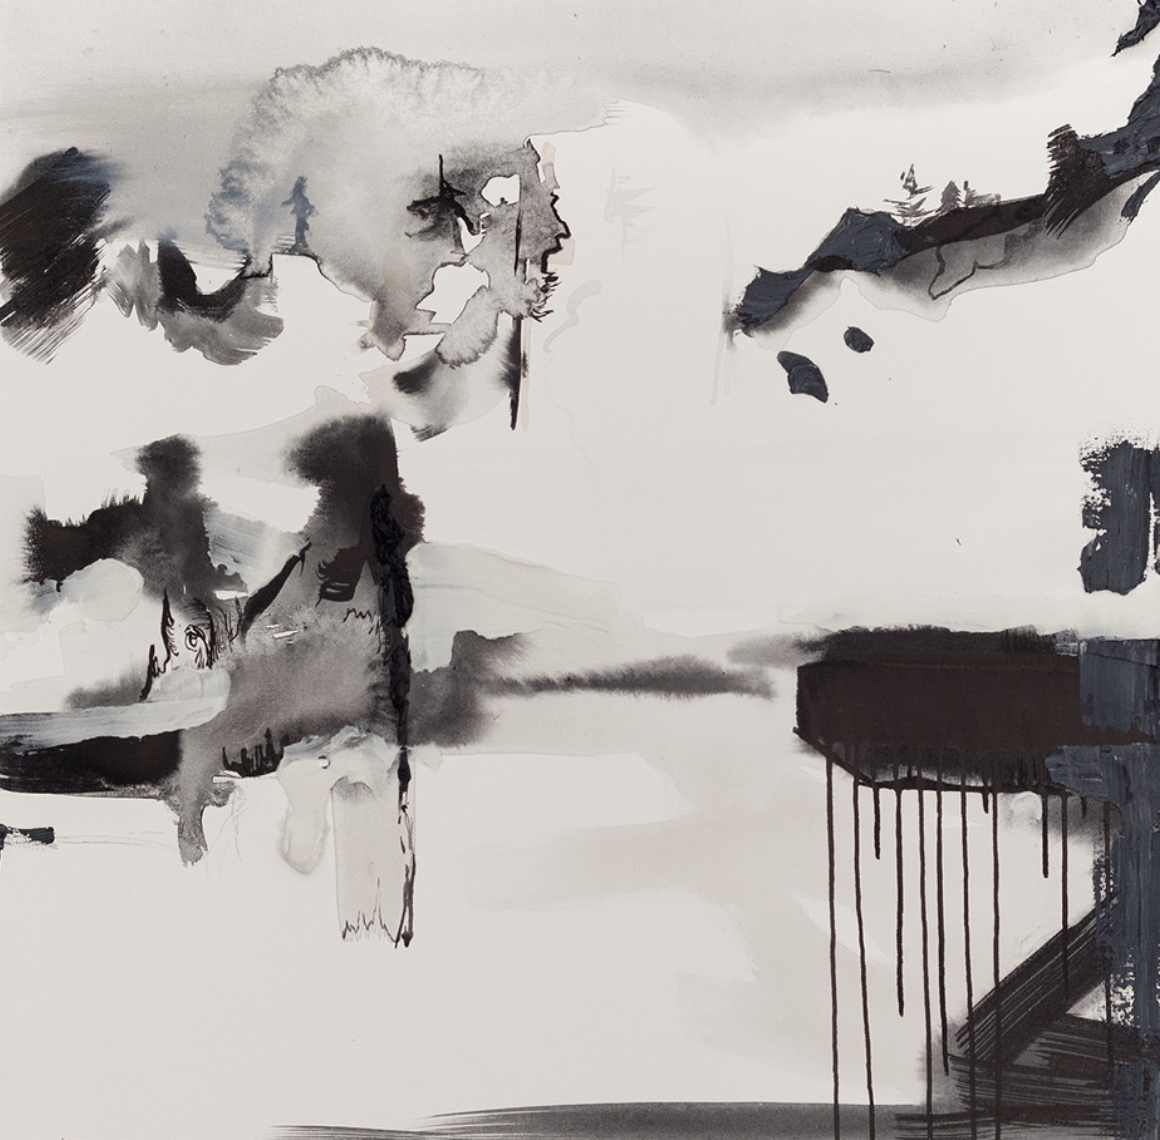 Andrea Welton_The Fog Surrounded the Giants_36 x 36 inches